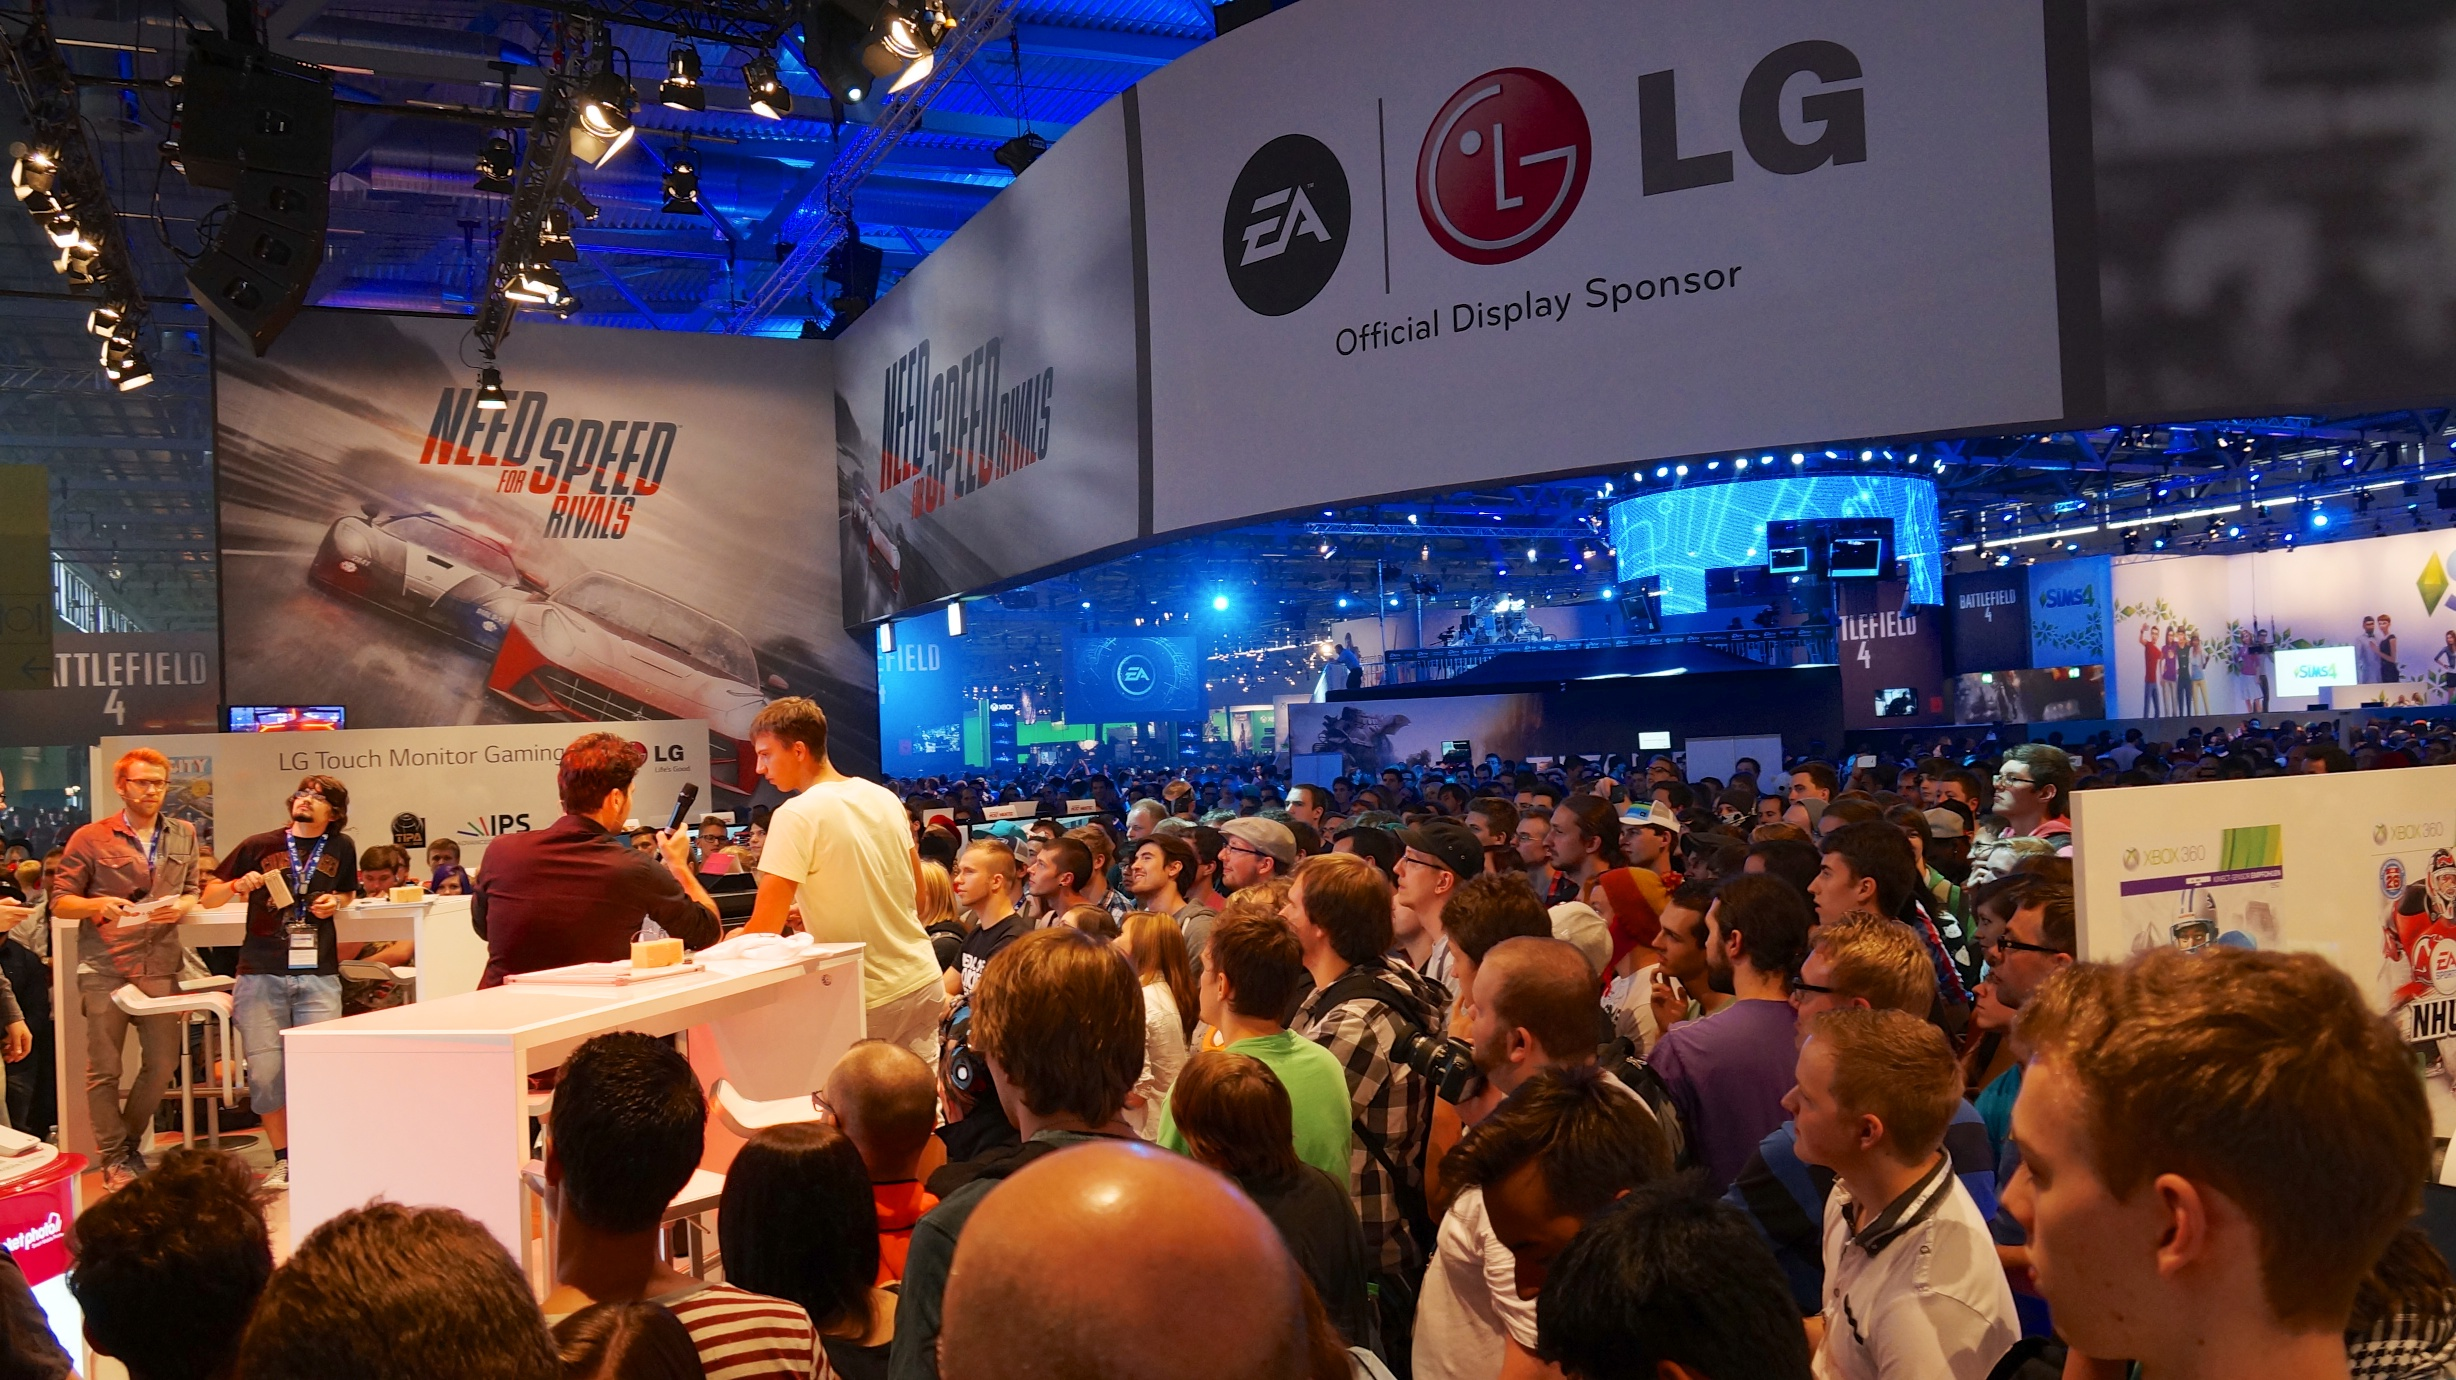 Staff at LG and EA's stage interview a visitor while others watch on at Gamescom 2013